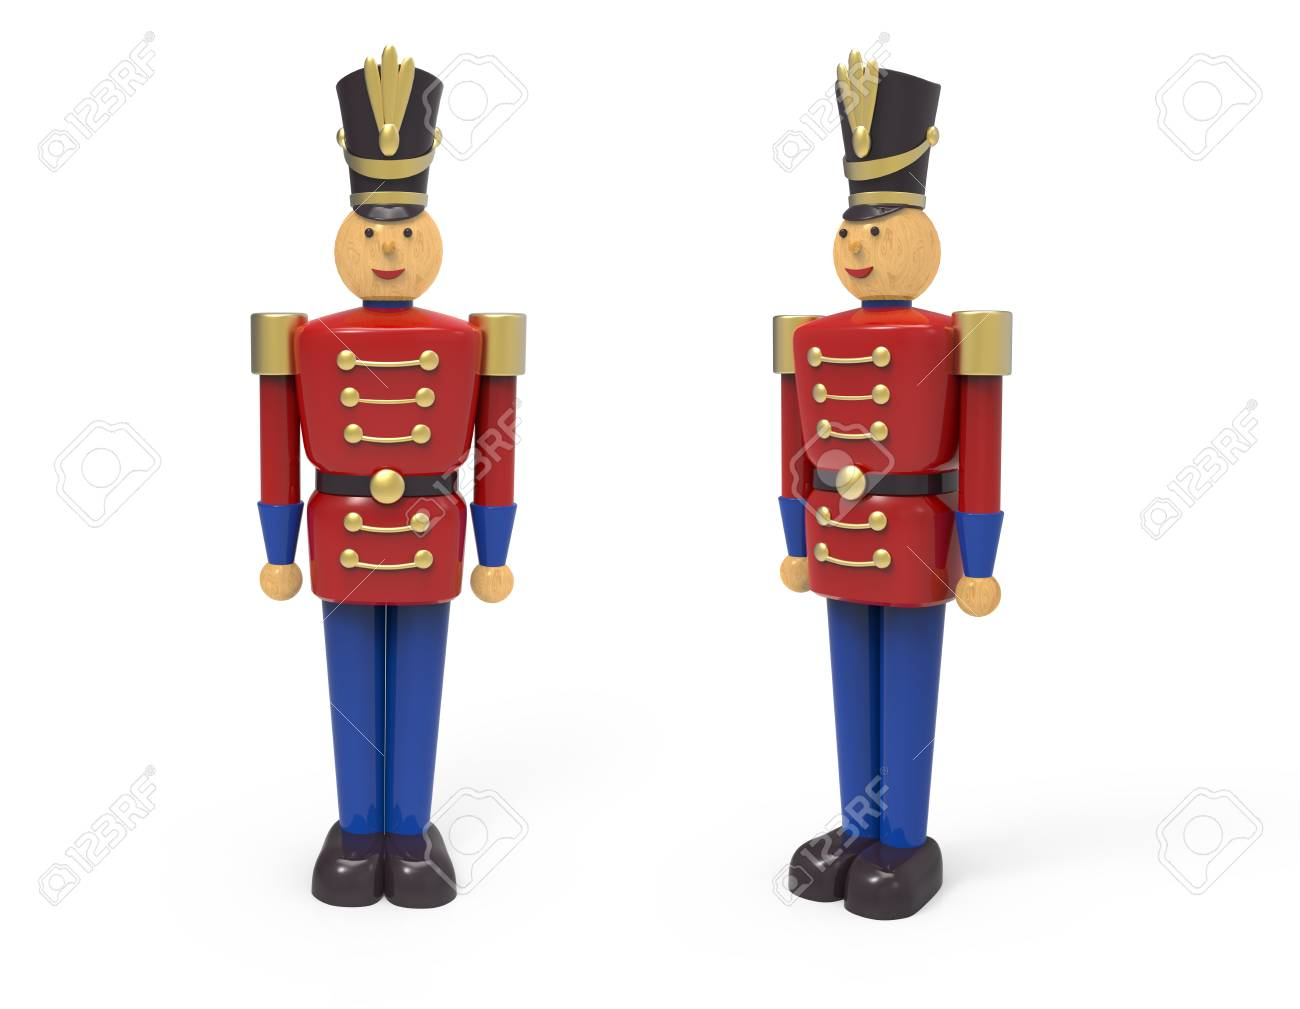 Christmas Vintage Wooden Soldier Toys 3d Image On White Background